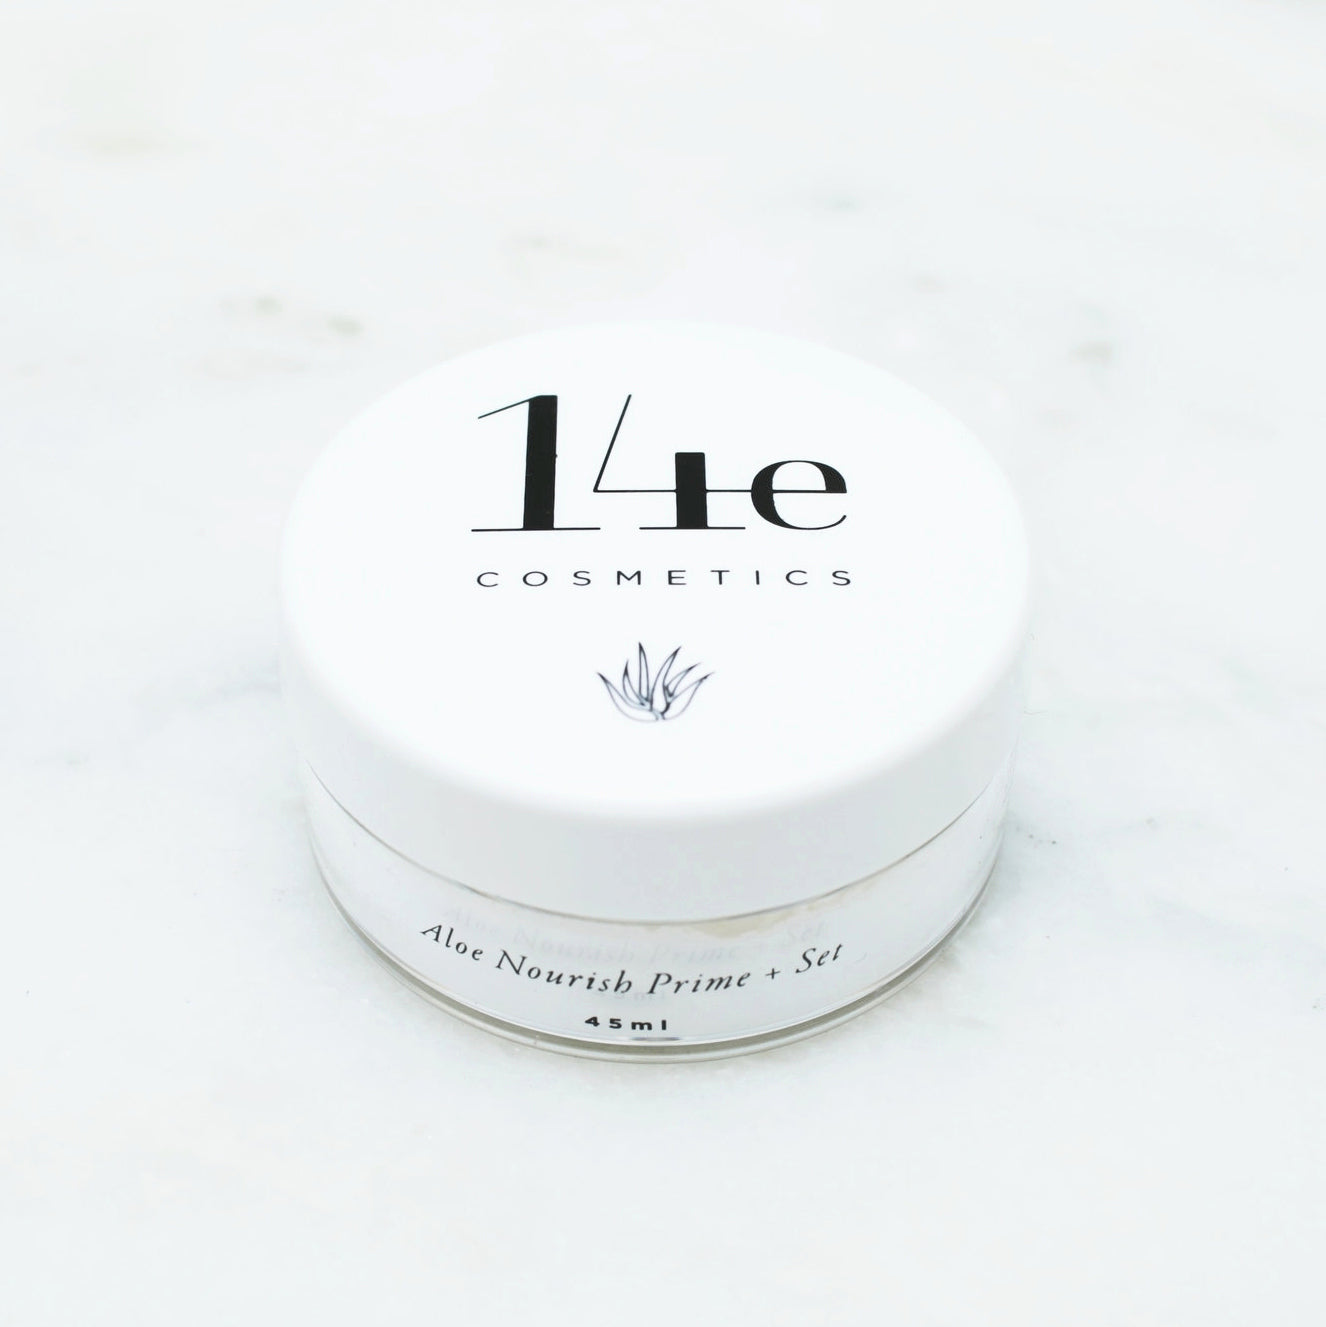 14e-Cosmetics-Aloe-Nourish-Prime-and-Set